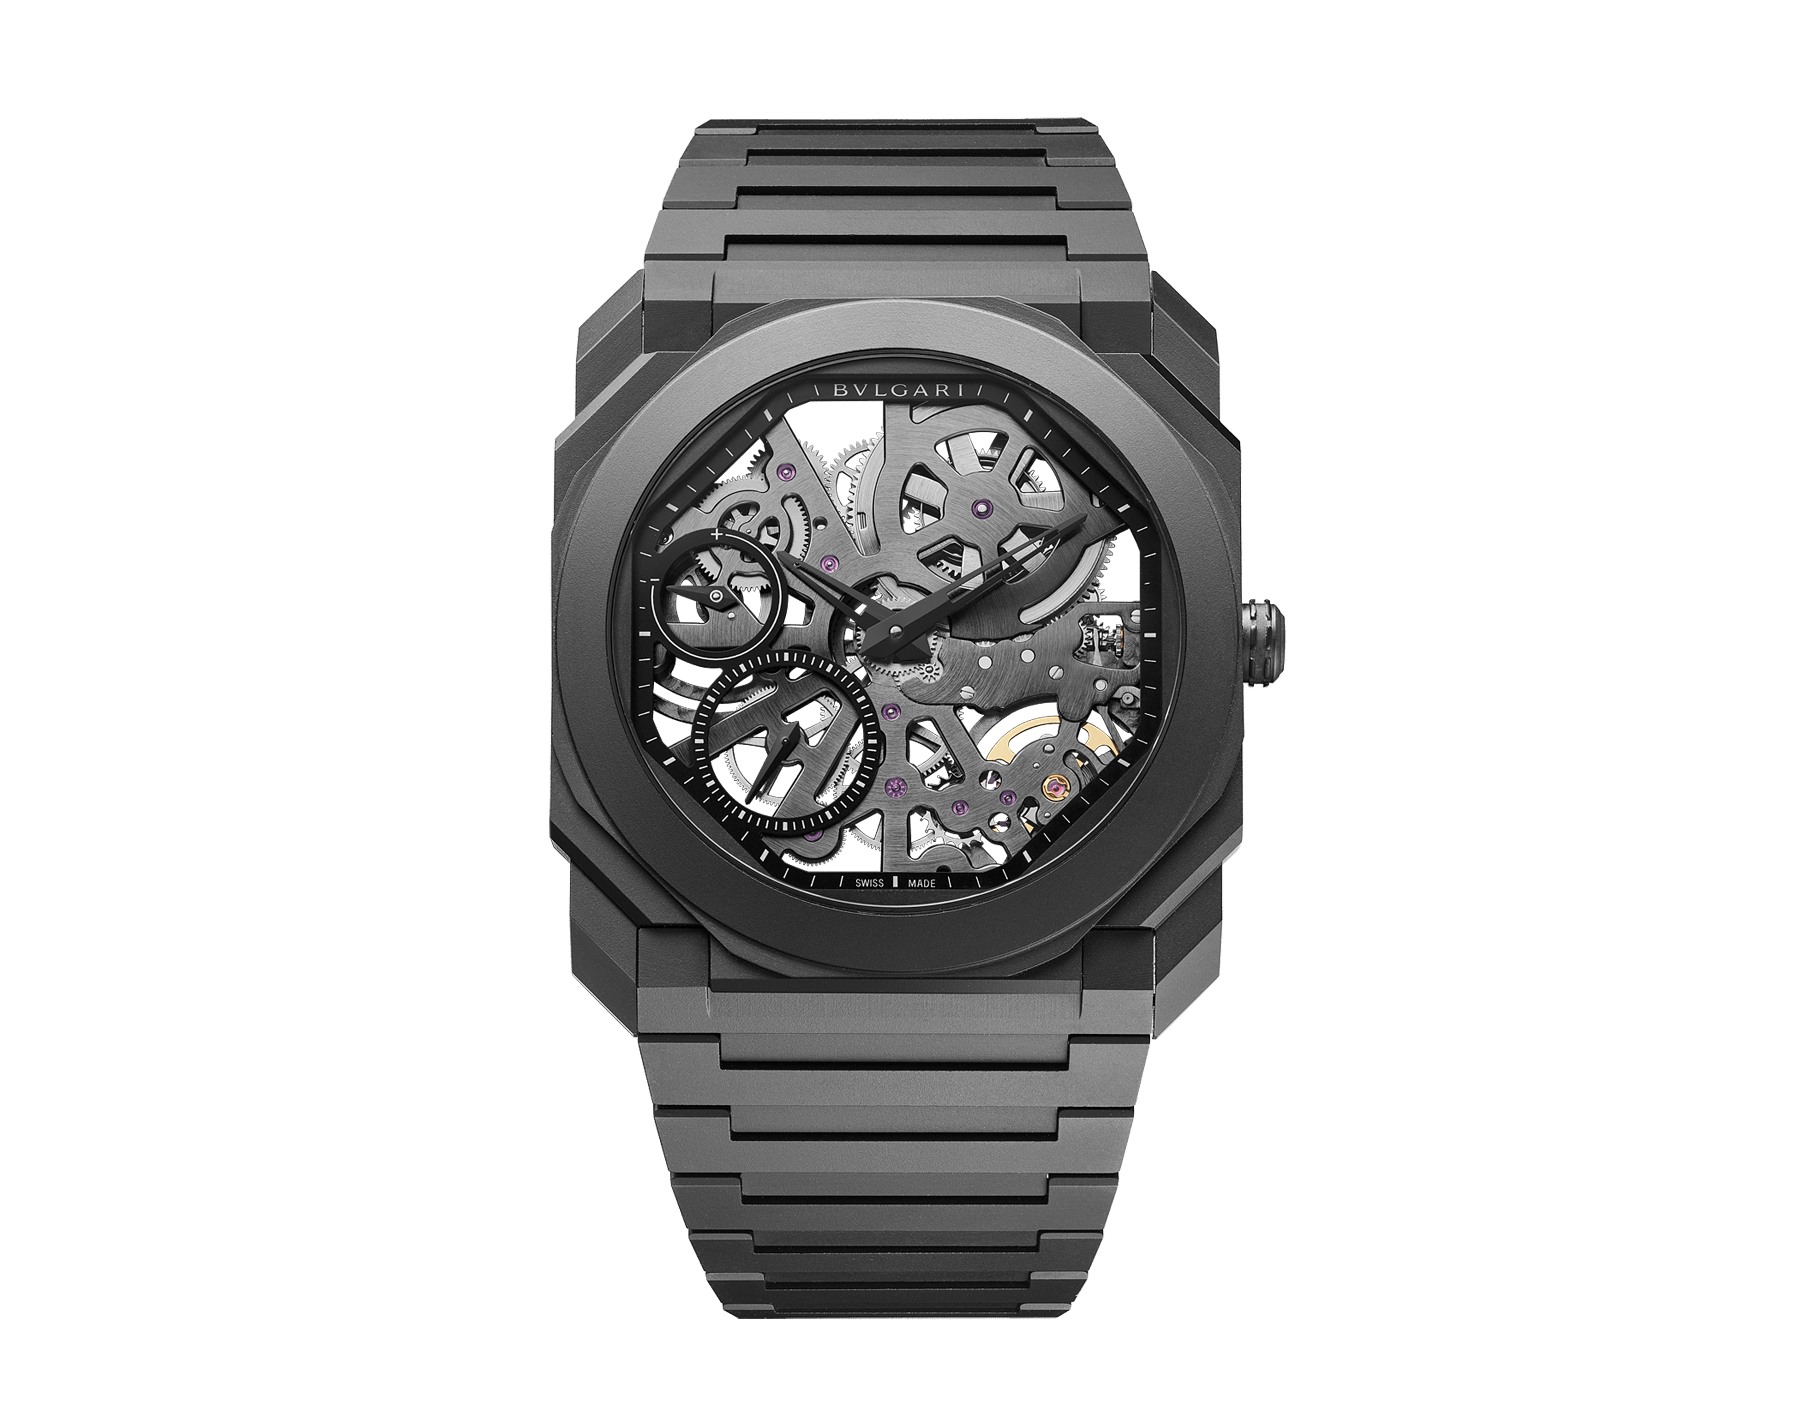 Octo Finissimo Skeleton watch in black ceramic with extra-thin skeletonised mechanical manufacture movement, manual winding, small seconds and power reserve indication. Water-resistant up to 30 metres. 103126 image 1